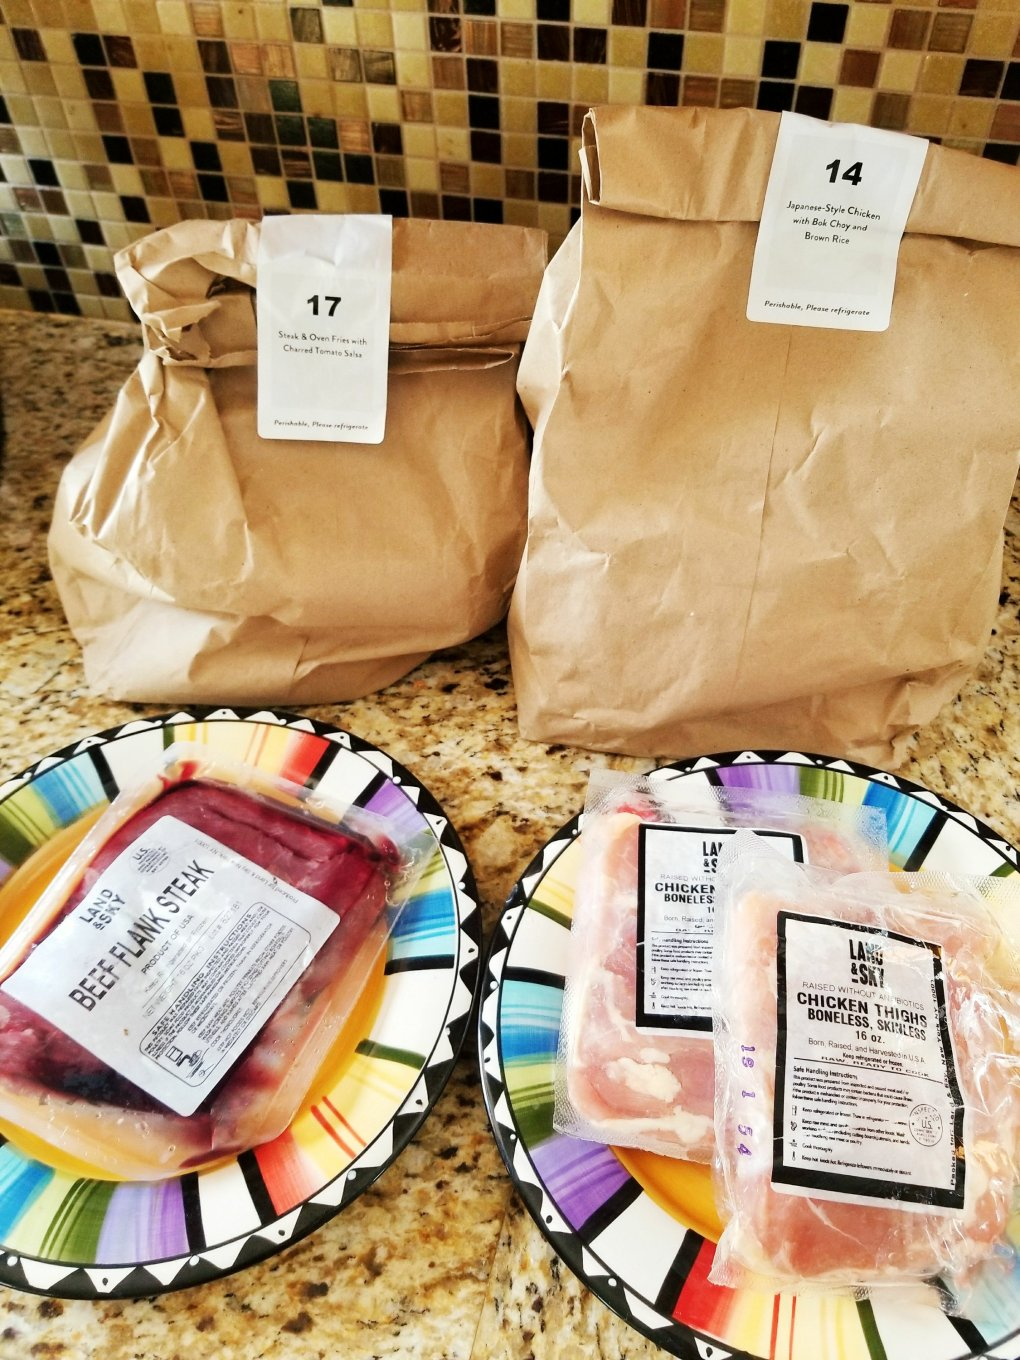 Two Marley Spoon Meal Kits for four people: Steak & Oven Fries w/ Charred Tomato Salsa and Japanese Style Chicken w./ Bok Choy and Brown Rice